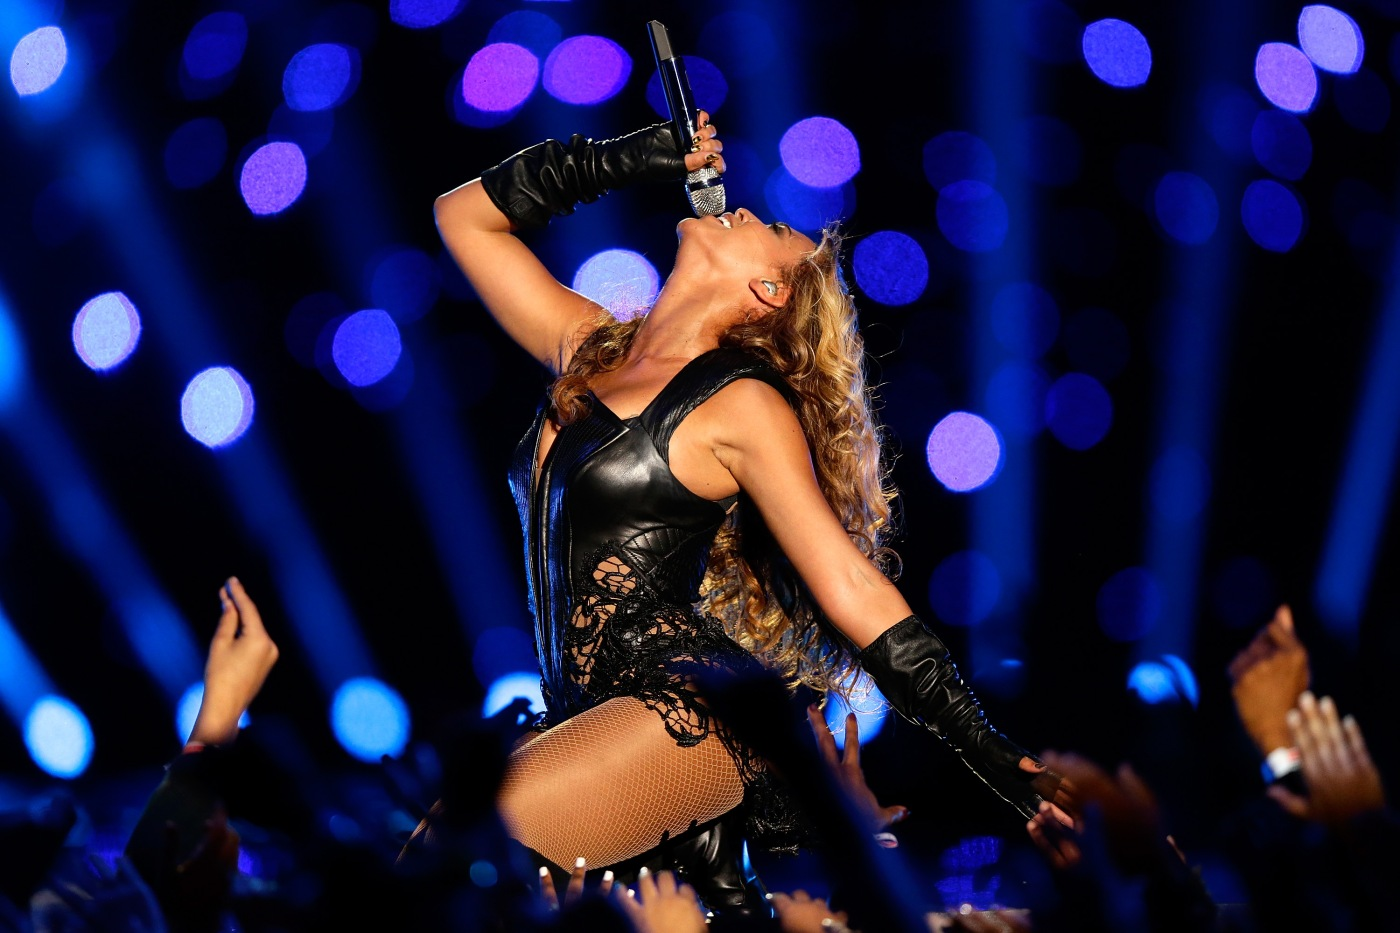 NEW ORLEANS, LA - FEBRUARY 03: Singer Beyonce performs during the Pepsi Super Bowl XLVII Halftime Show at the Mercedes-Benz Superdome on February 3, 2013 in New Orleans, Louisiana. (Photo by Ezra Shaw/Getty Images)